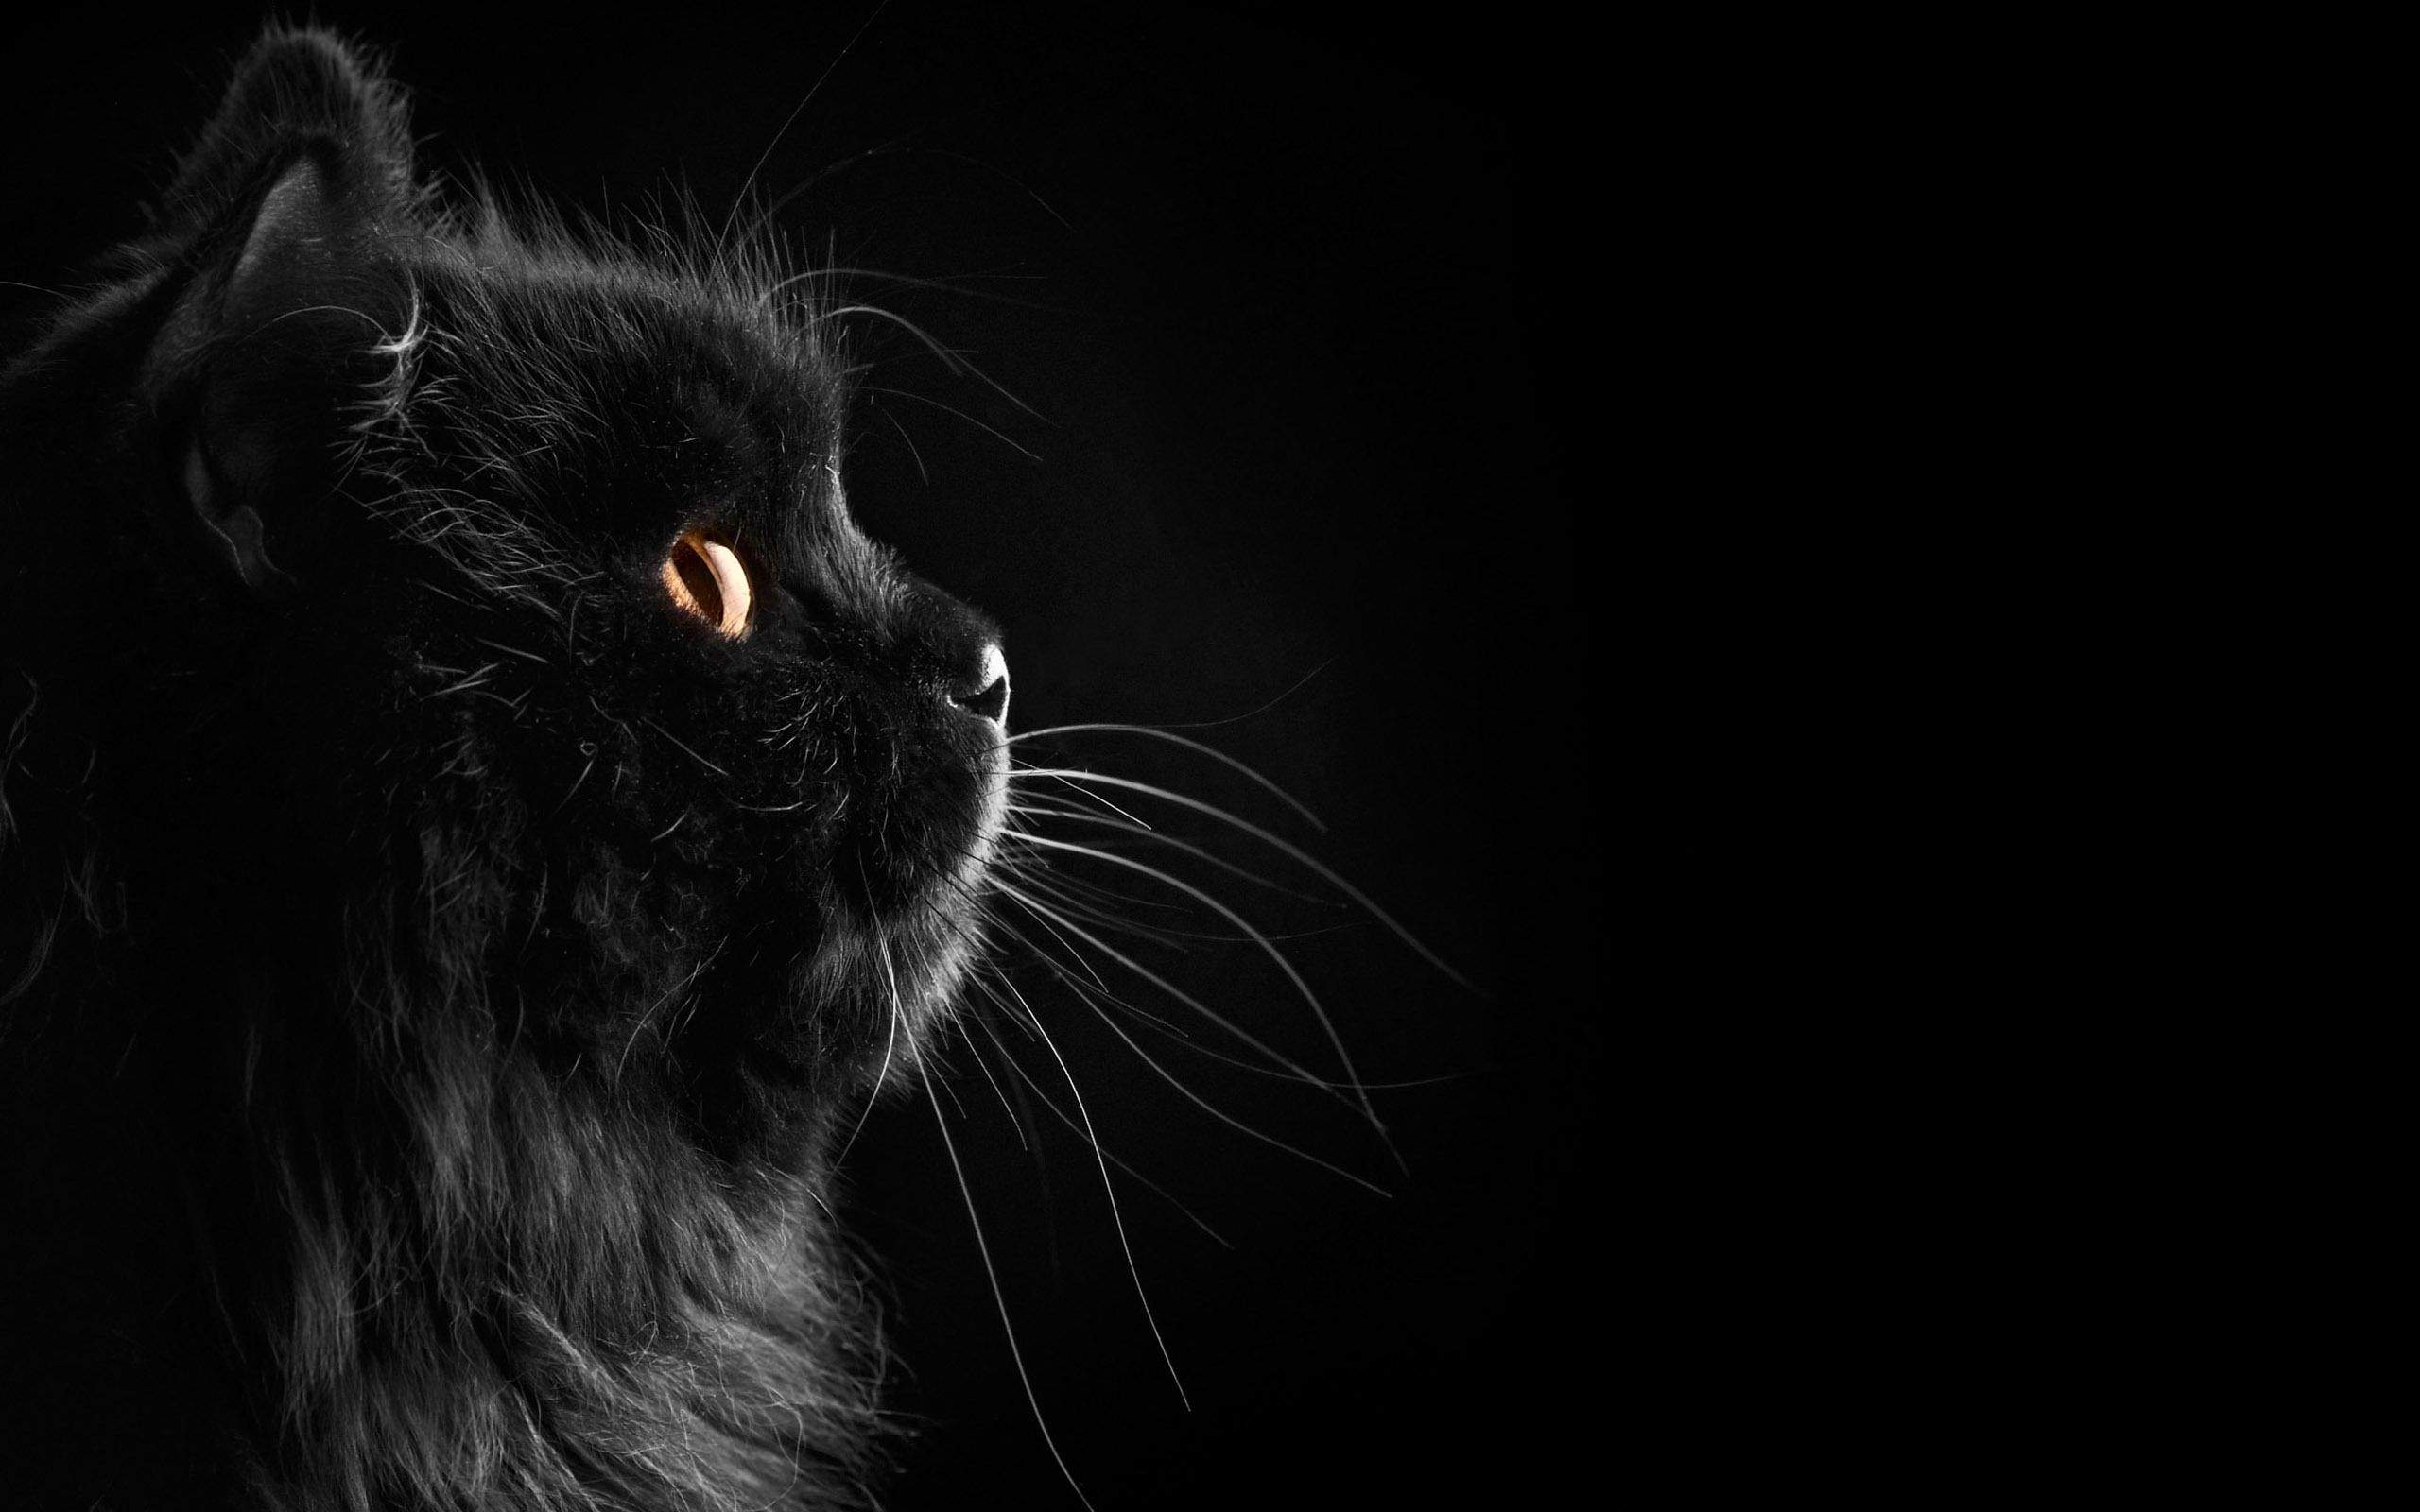 Black Cat Wallpaper Wallpaper Cats Blackcat Fluffy Black Cat Black Cat Cat Wallpaper